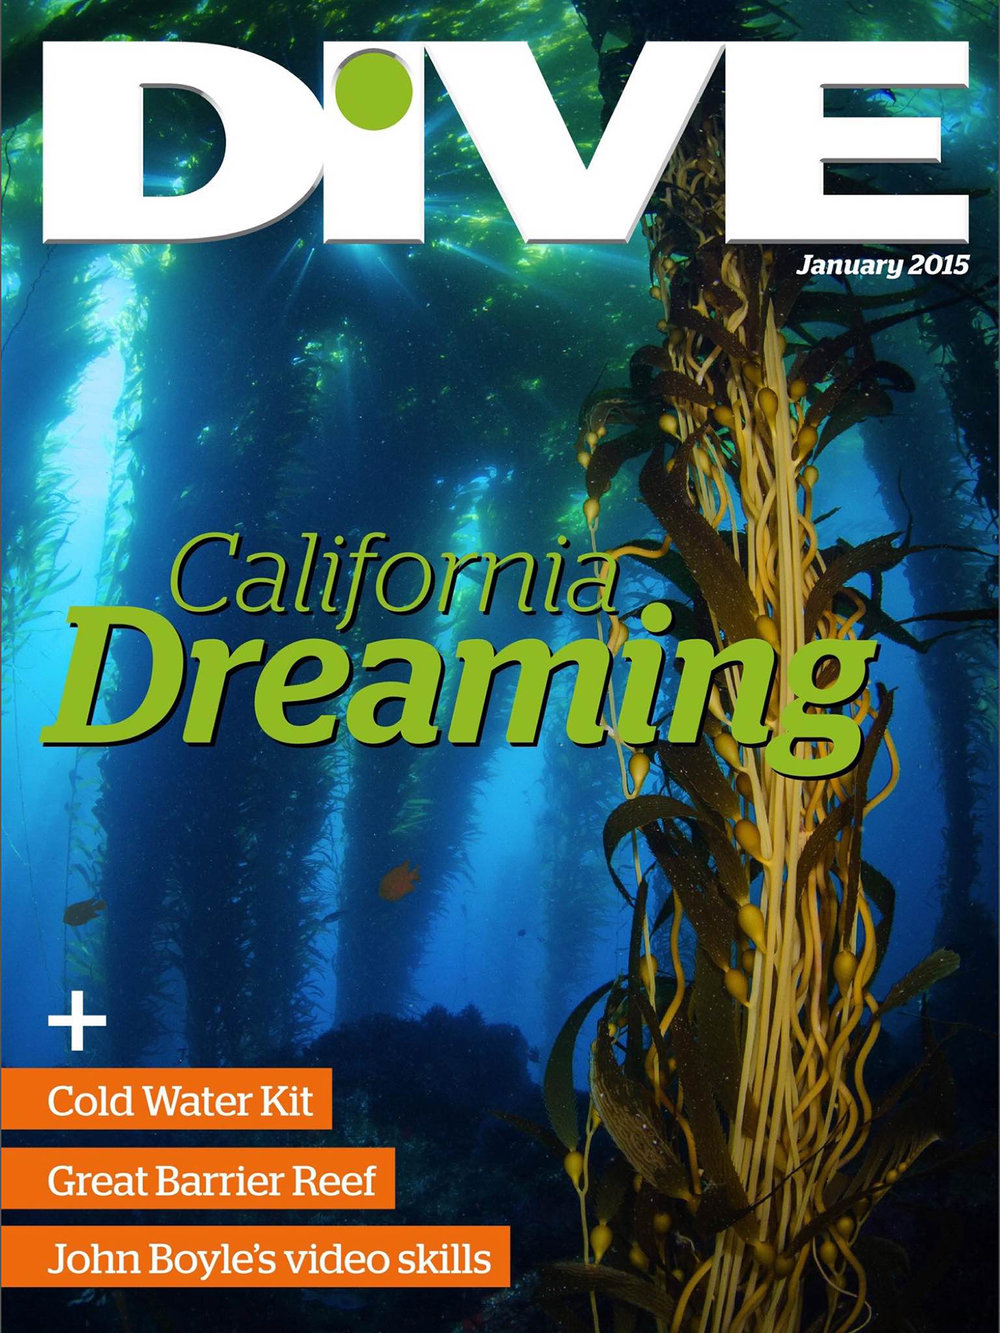 mz_dive_cover_jan15.jpg